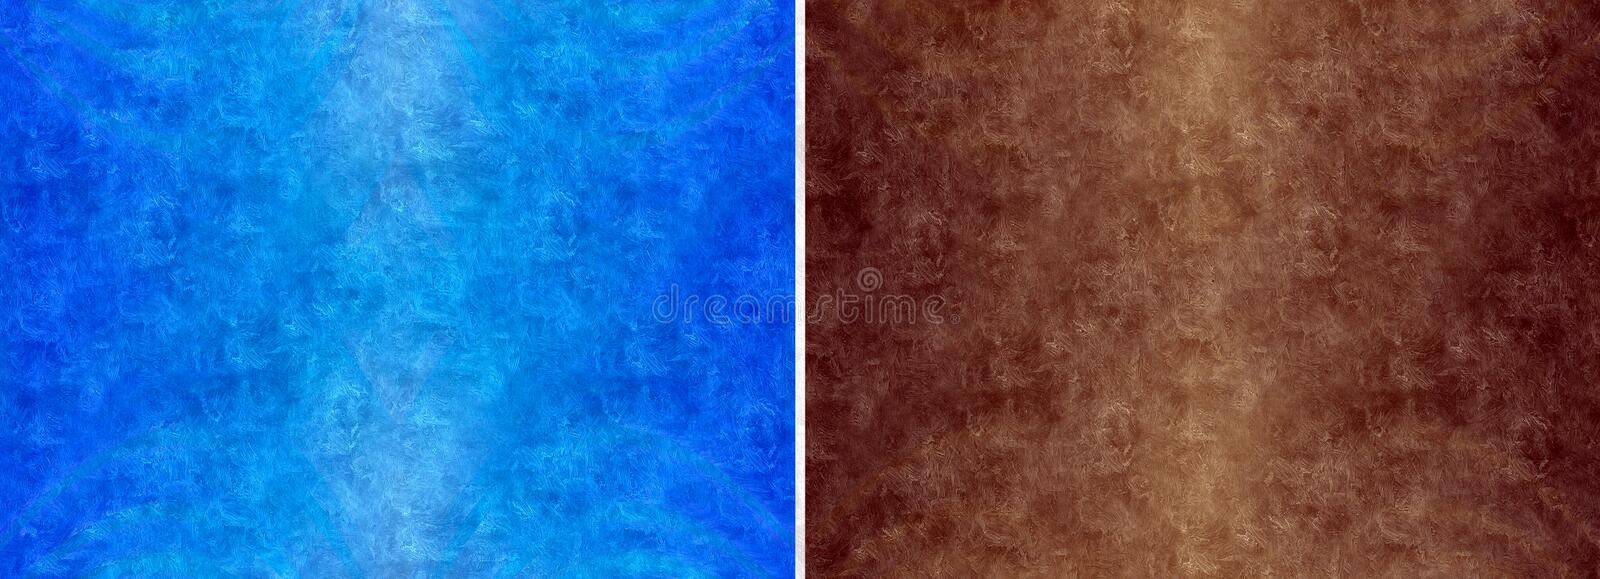 Abstract grunge background. Set of two abstract blue and brown background with dirty and scratched texture, made with watercolor style stock photography